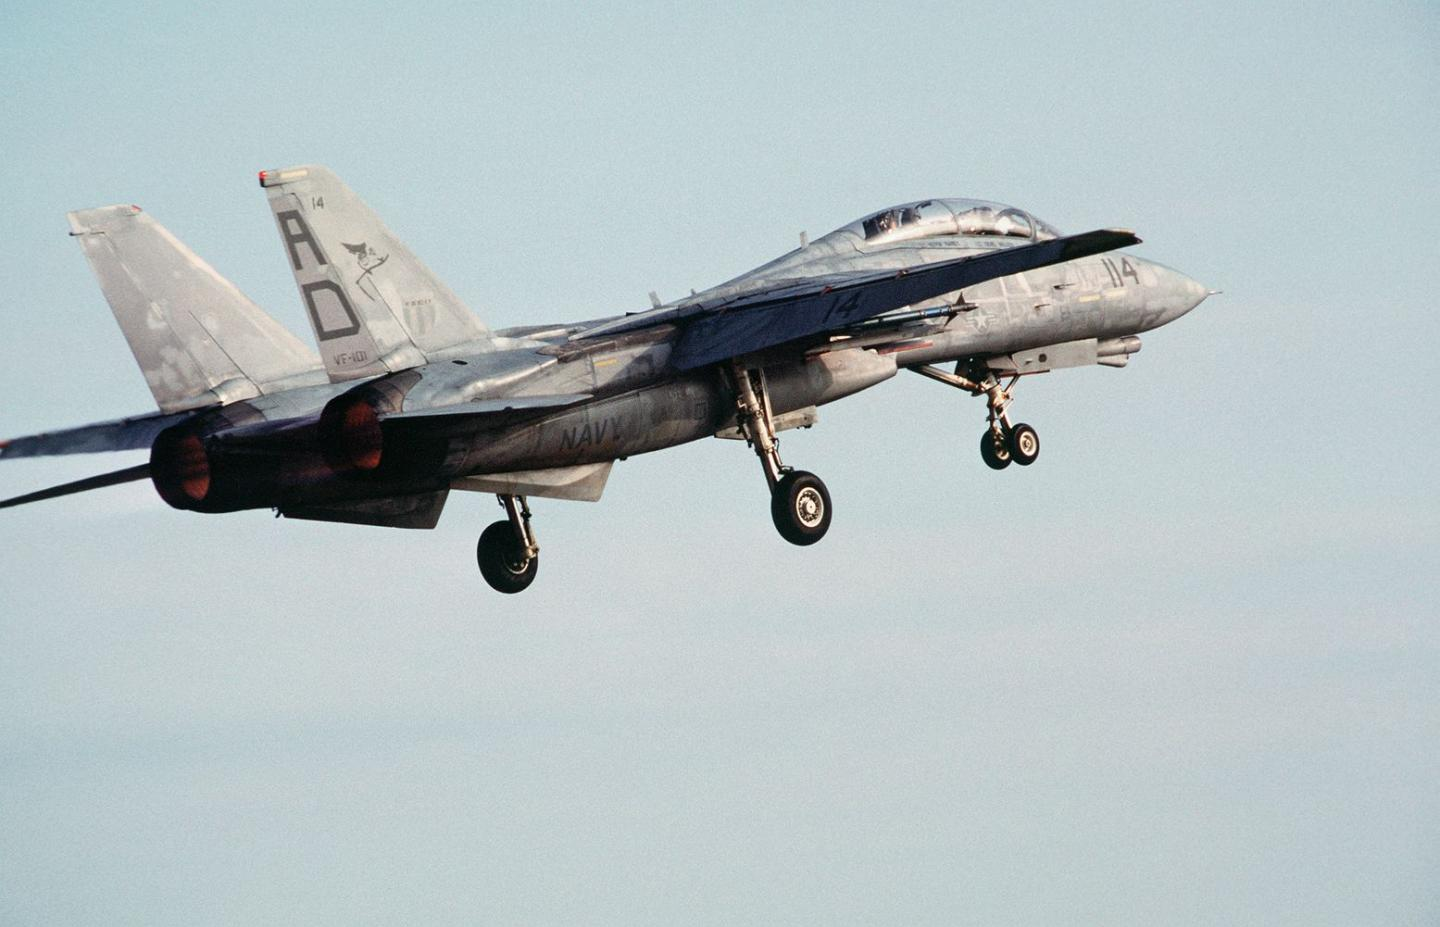 One of Irans Last F-14A Tomcats Just Crashed